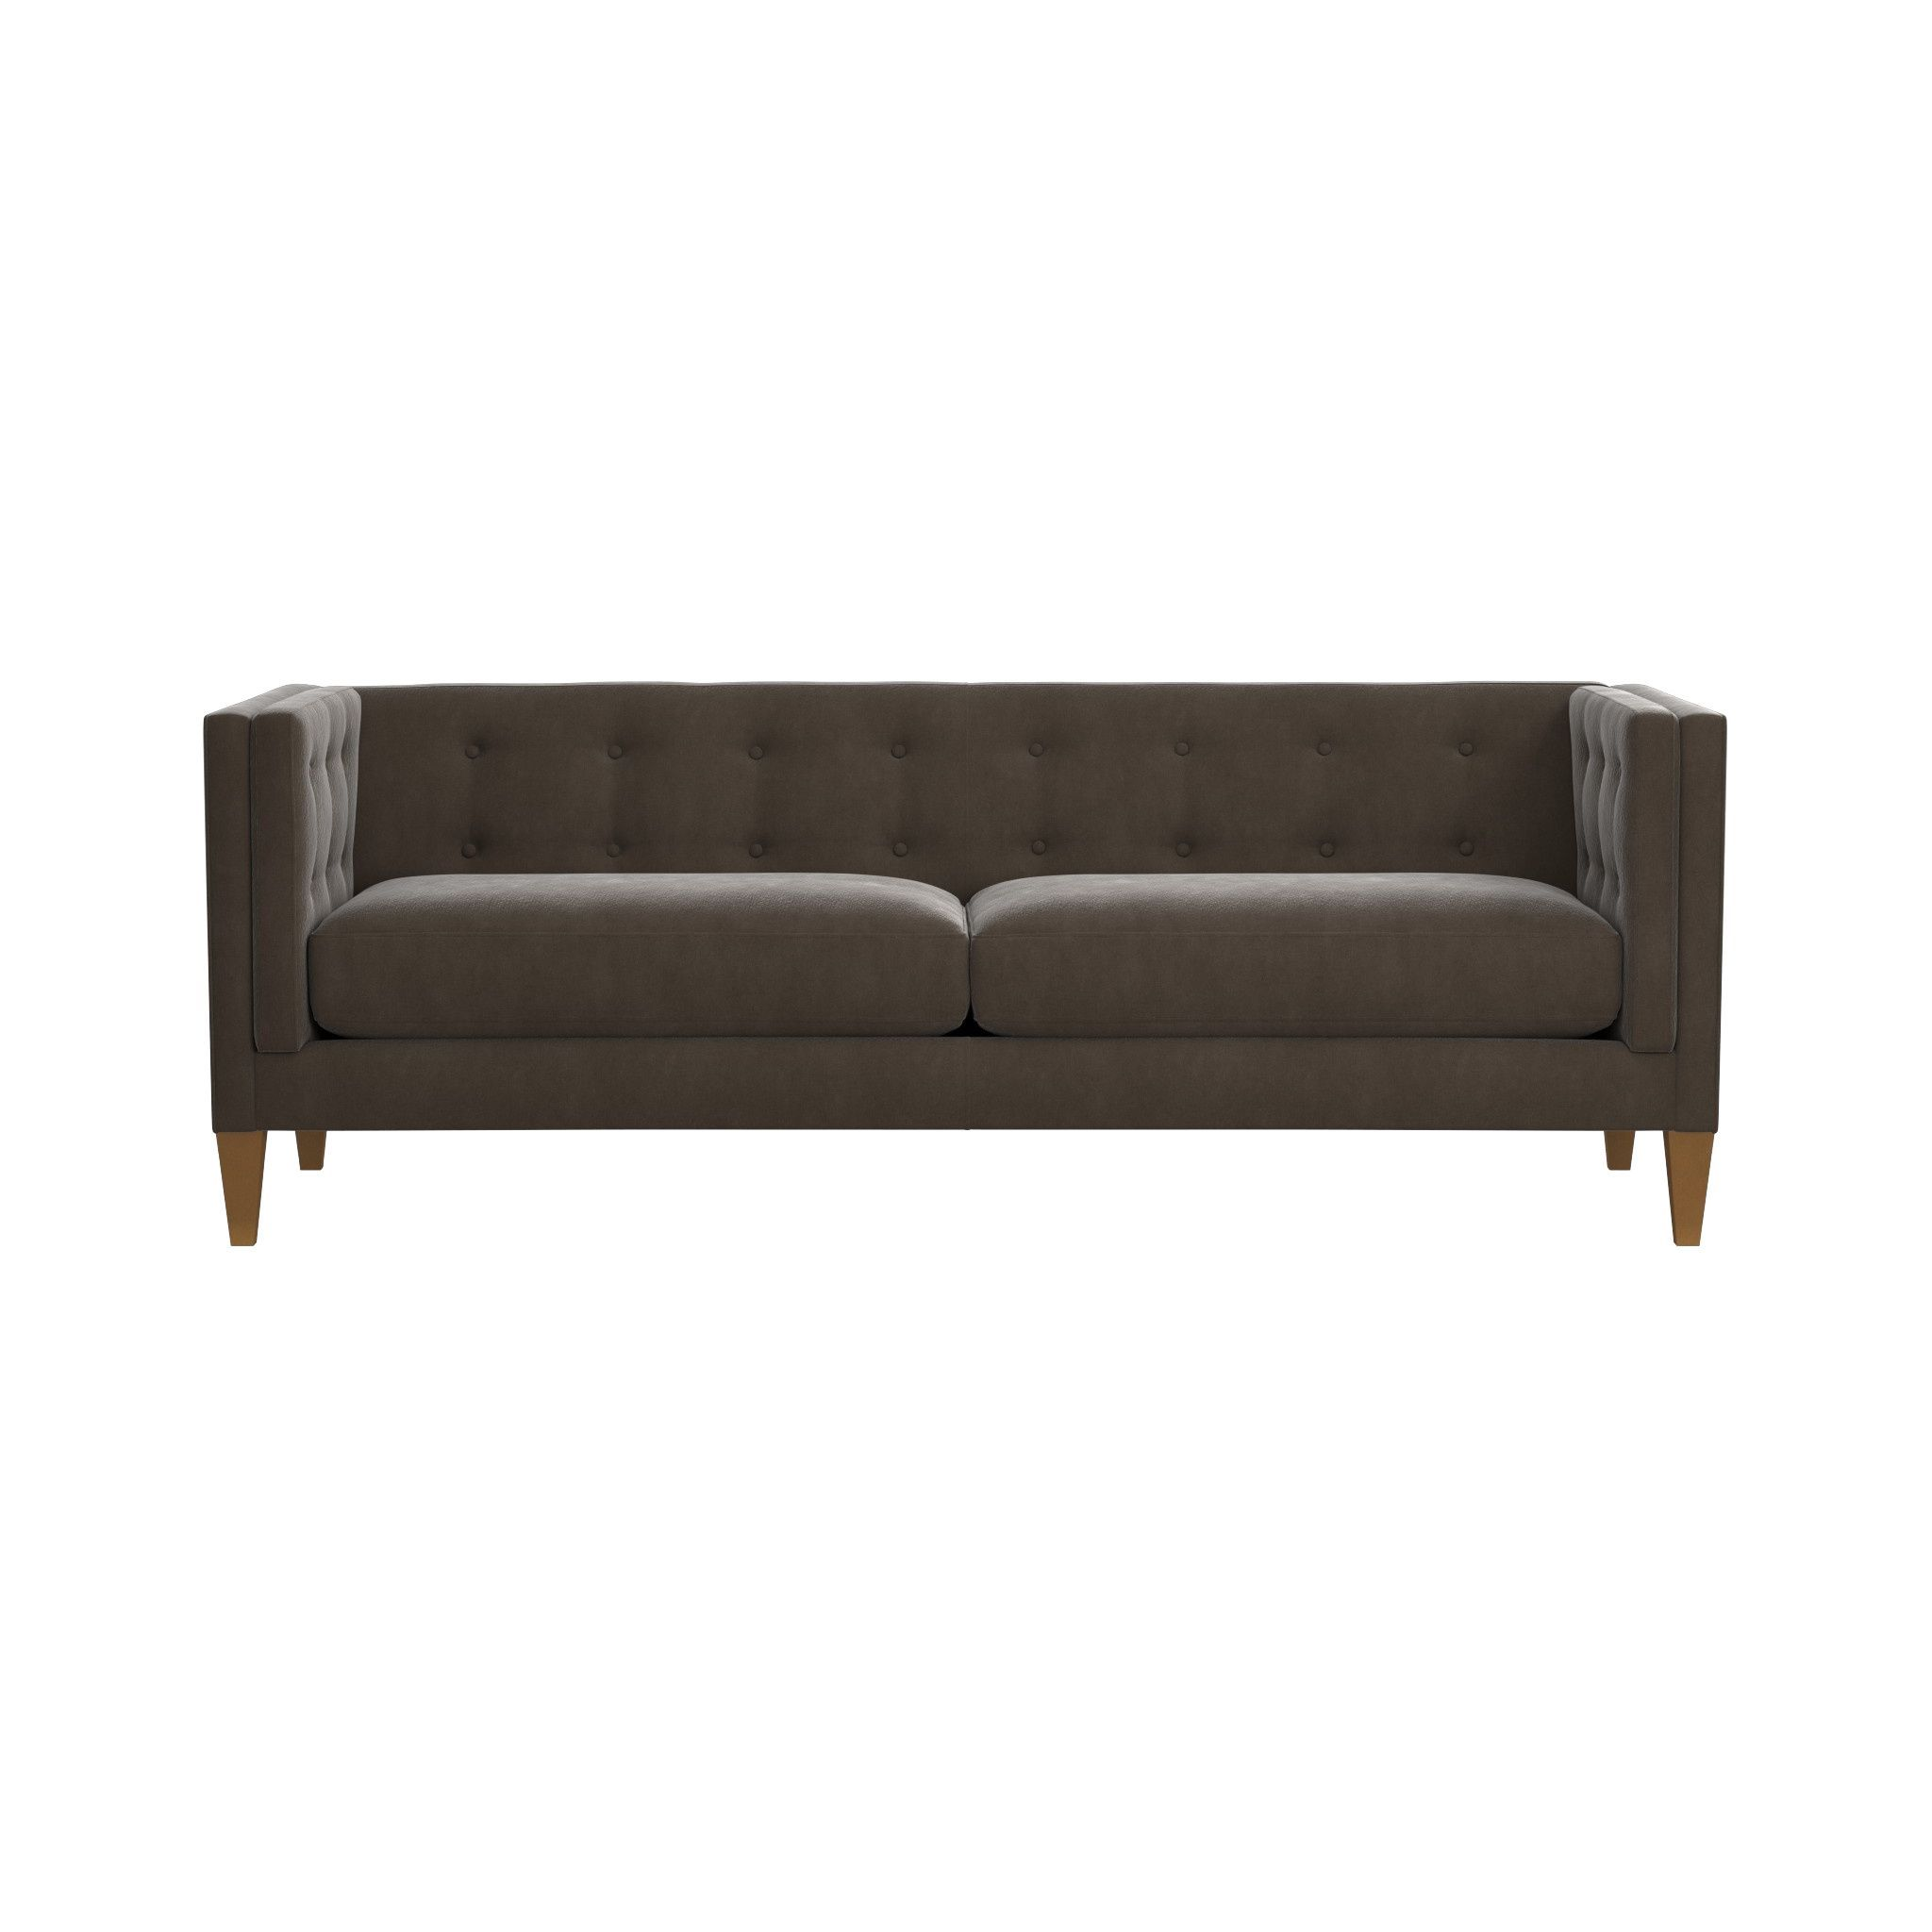 This boutique style sofa features a soft continuous button tufted back and two firm seat cushions the aidan velvet tufted sofa is a crate and barrel